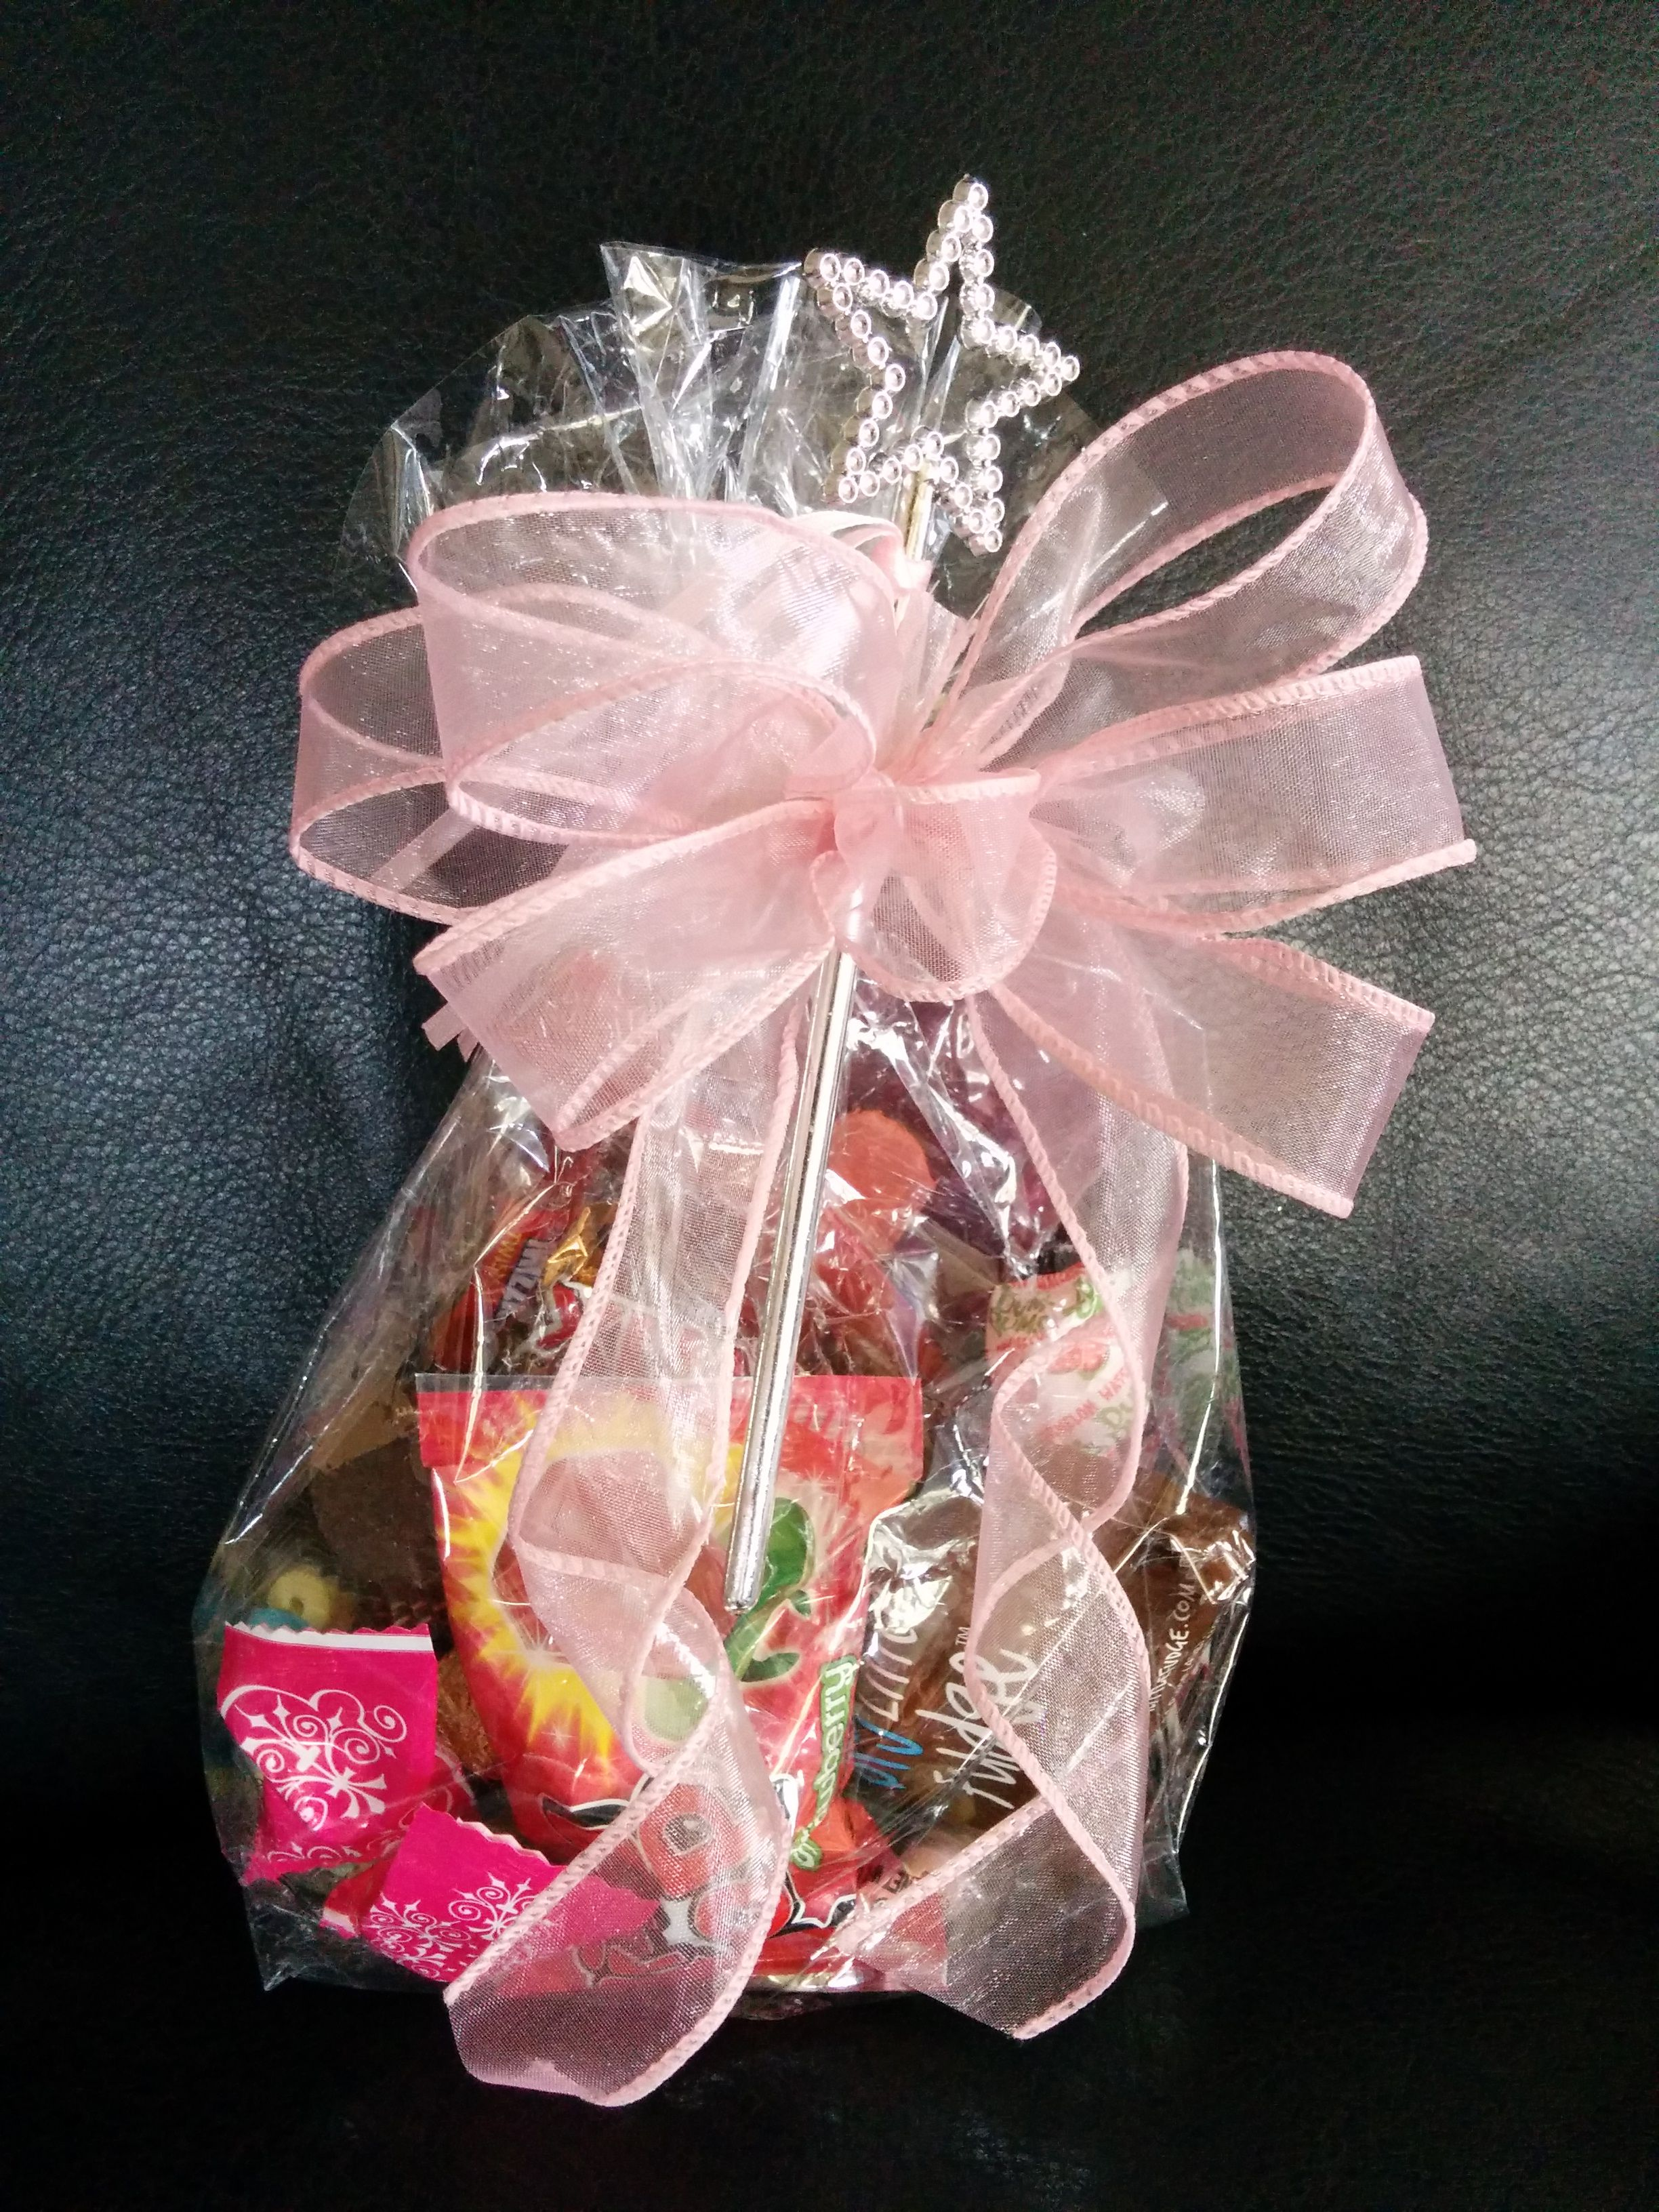 Princess Party Favor. New! Order your Themed Candy Bag Favors! We ...